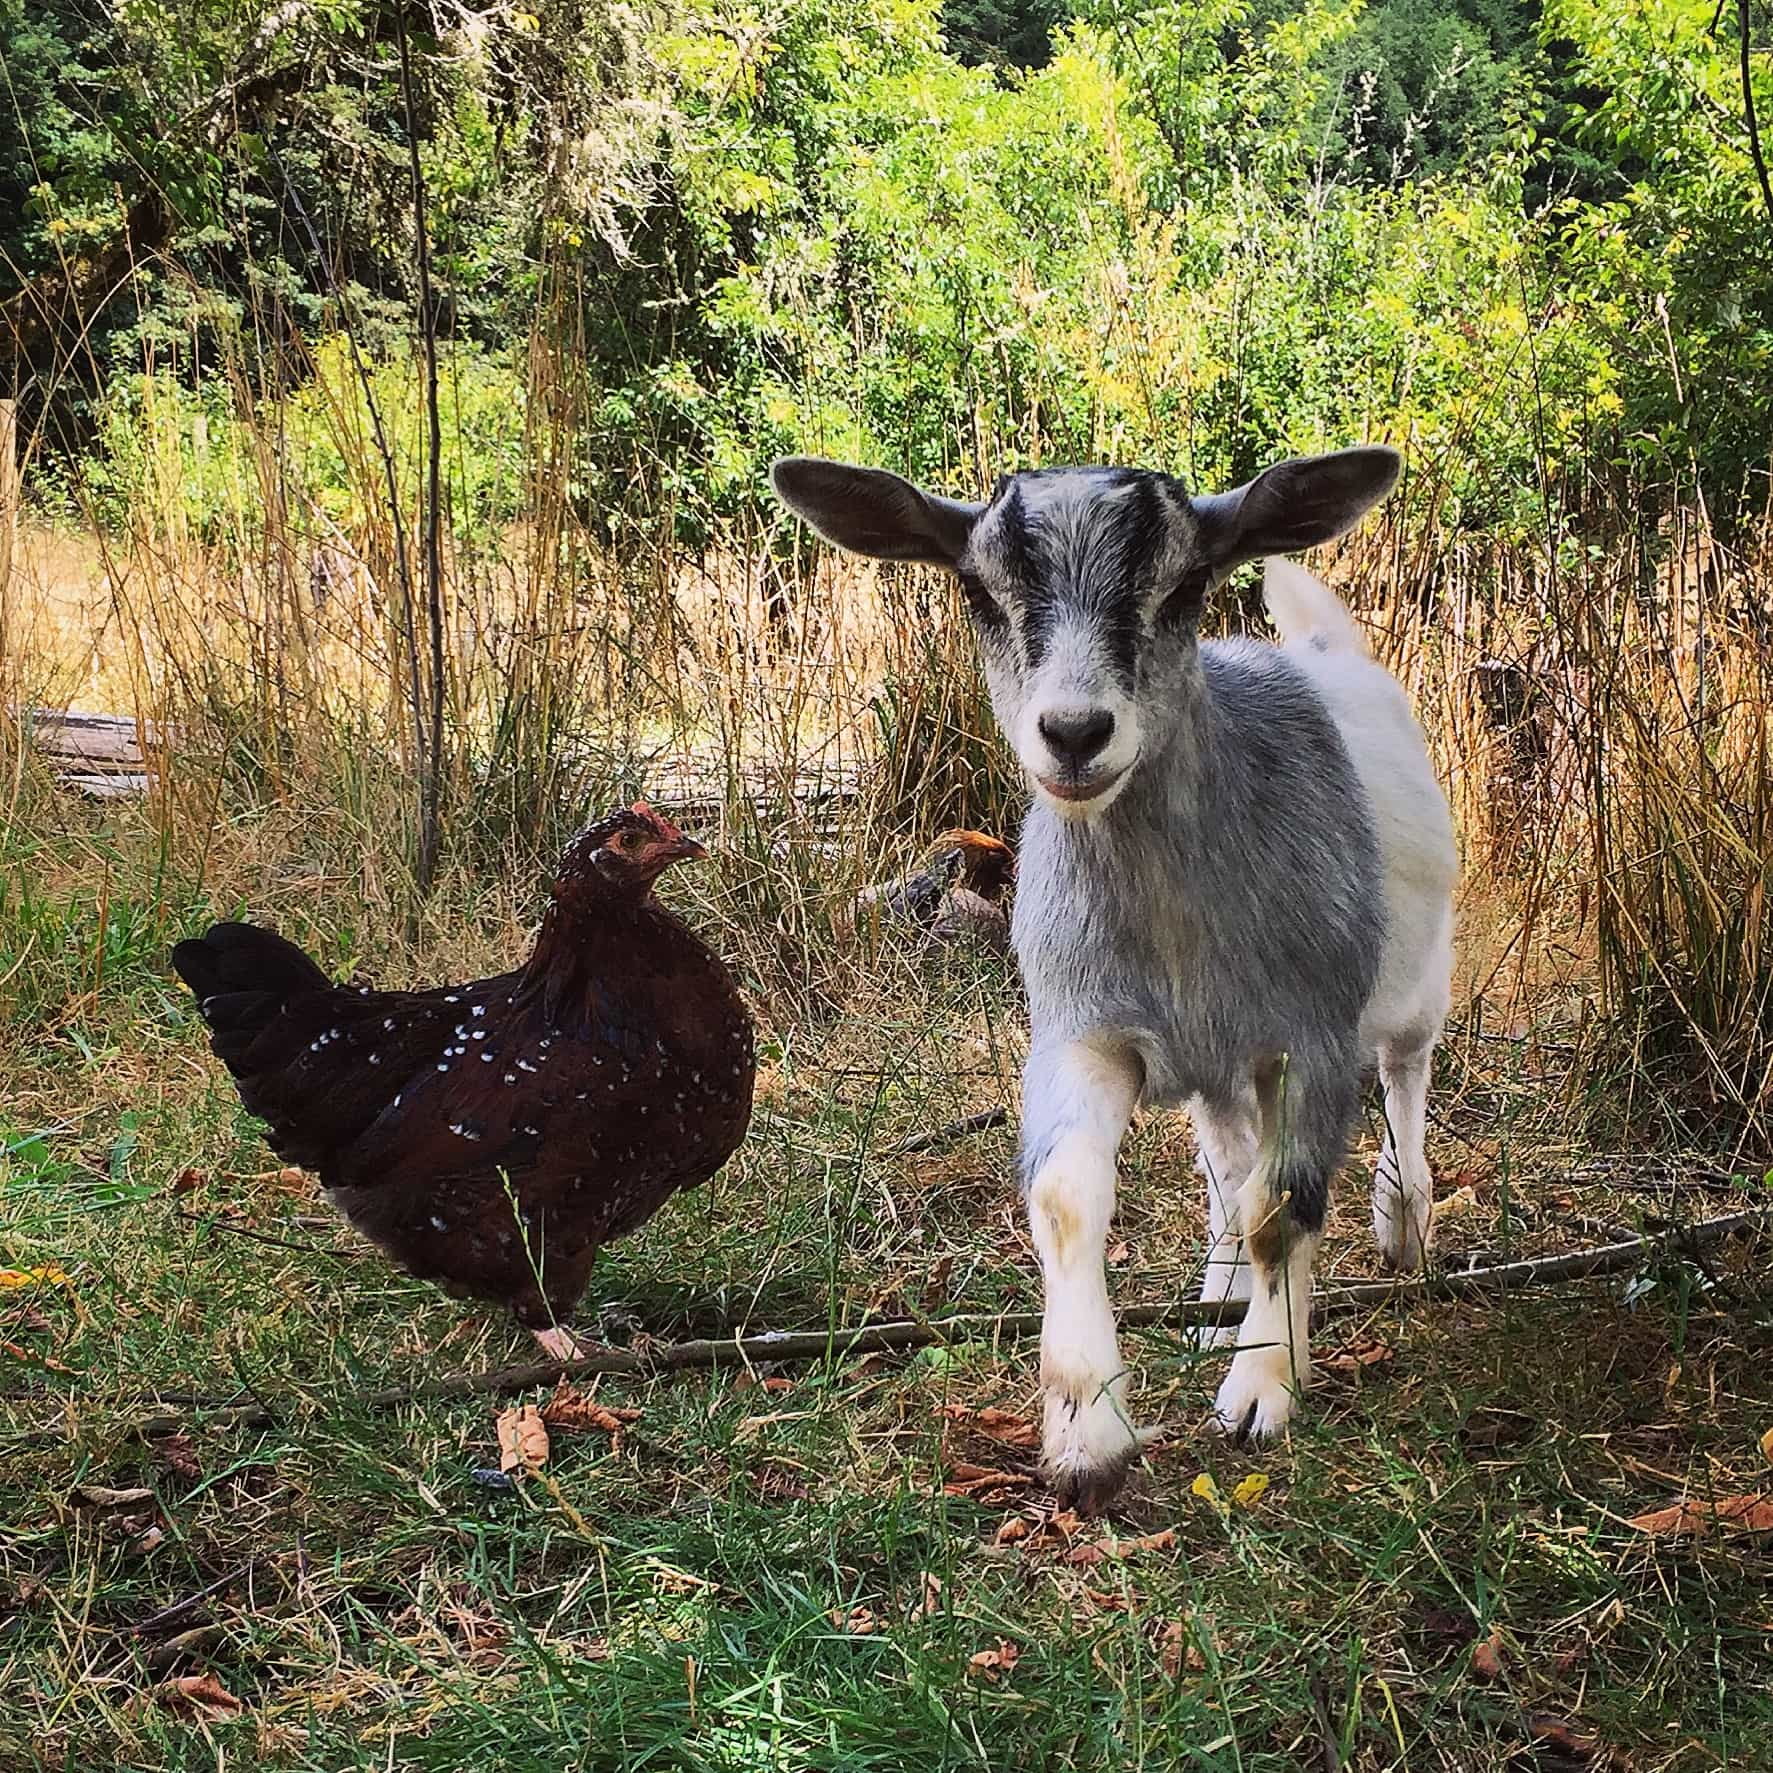 A hen and Pearl, a baby feinting goat